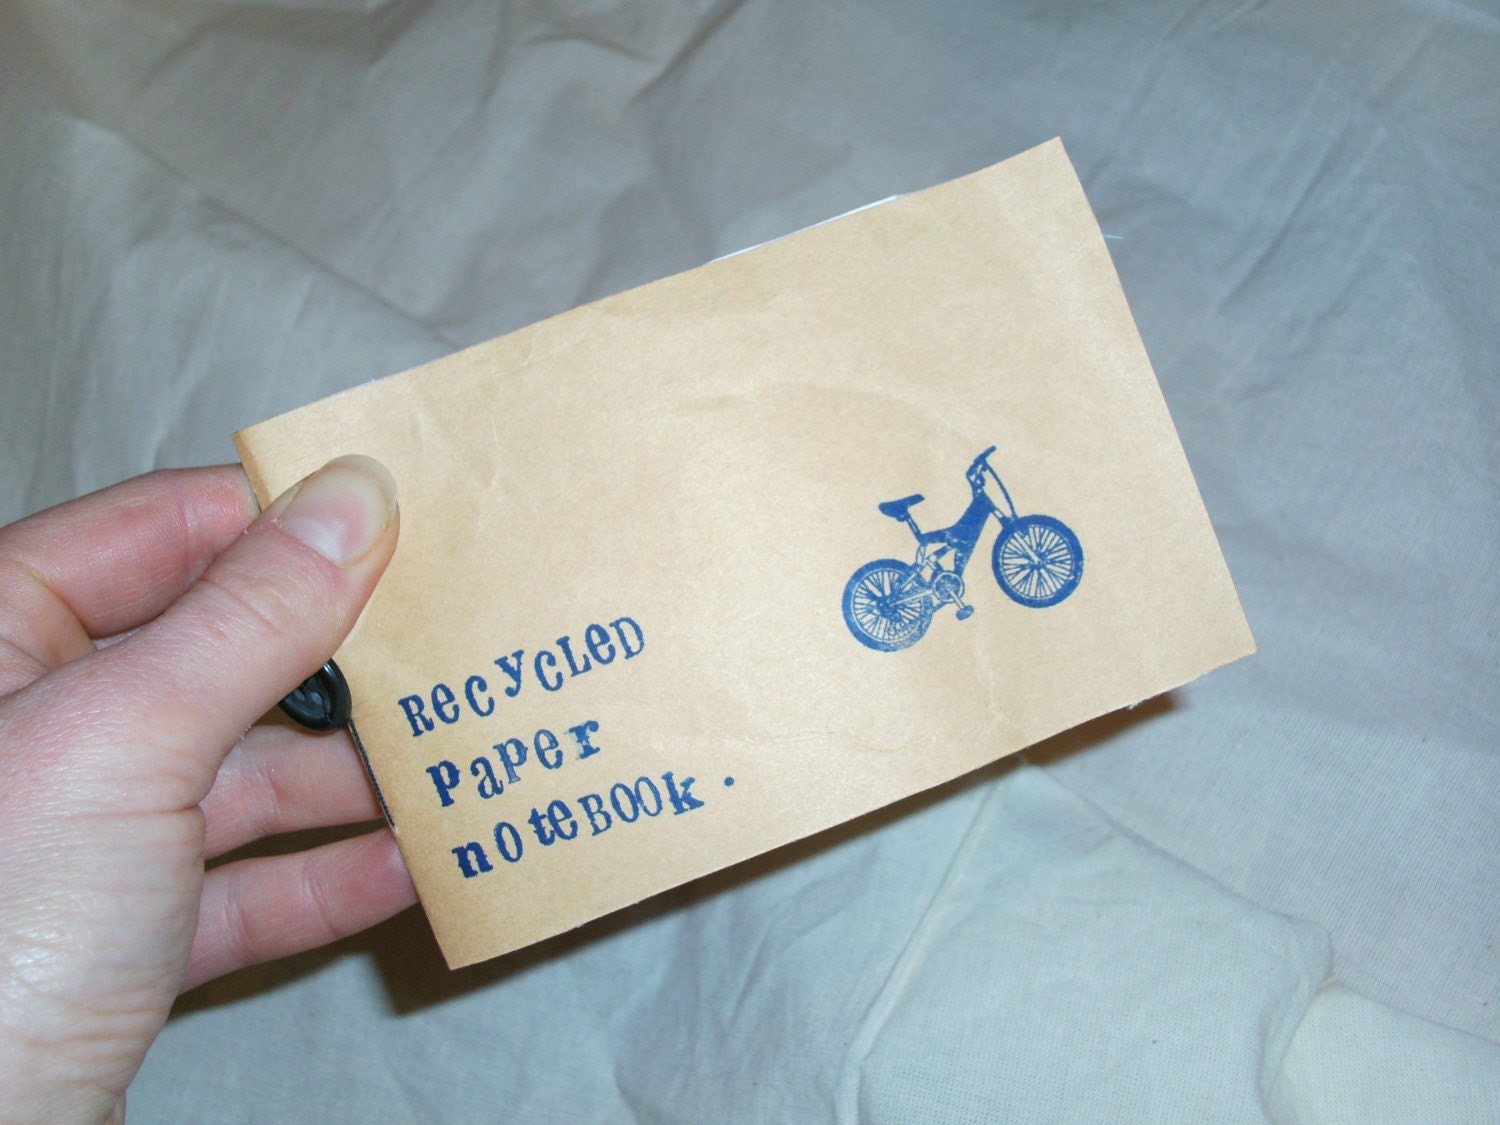 Recycled paper notebook (bike)